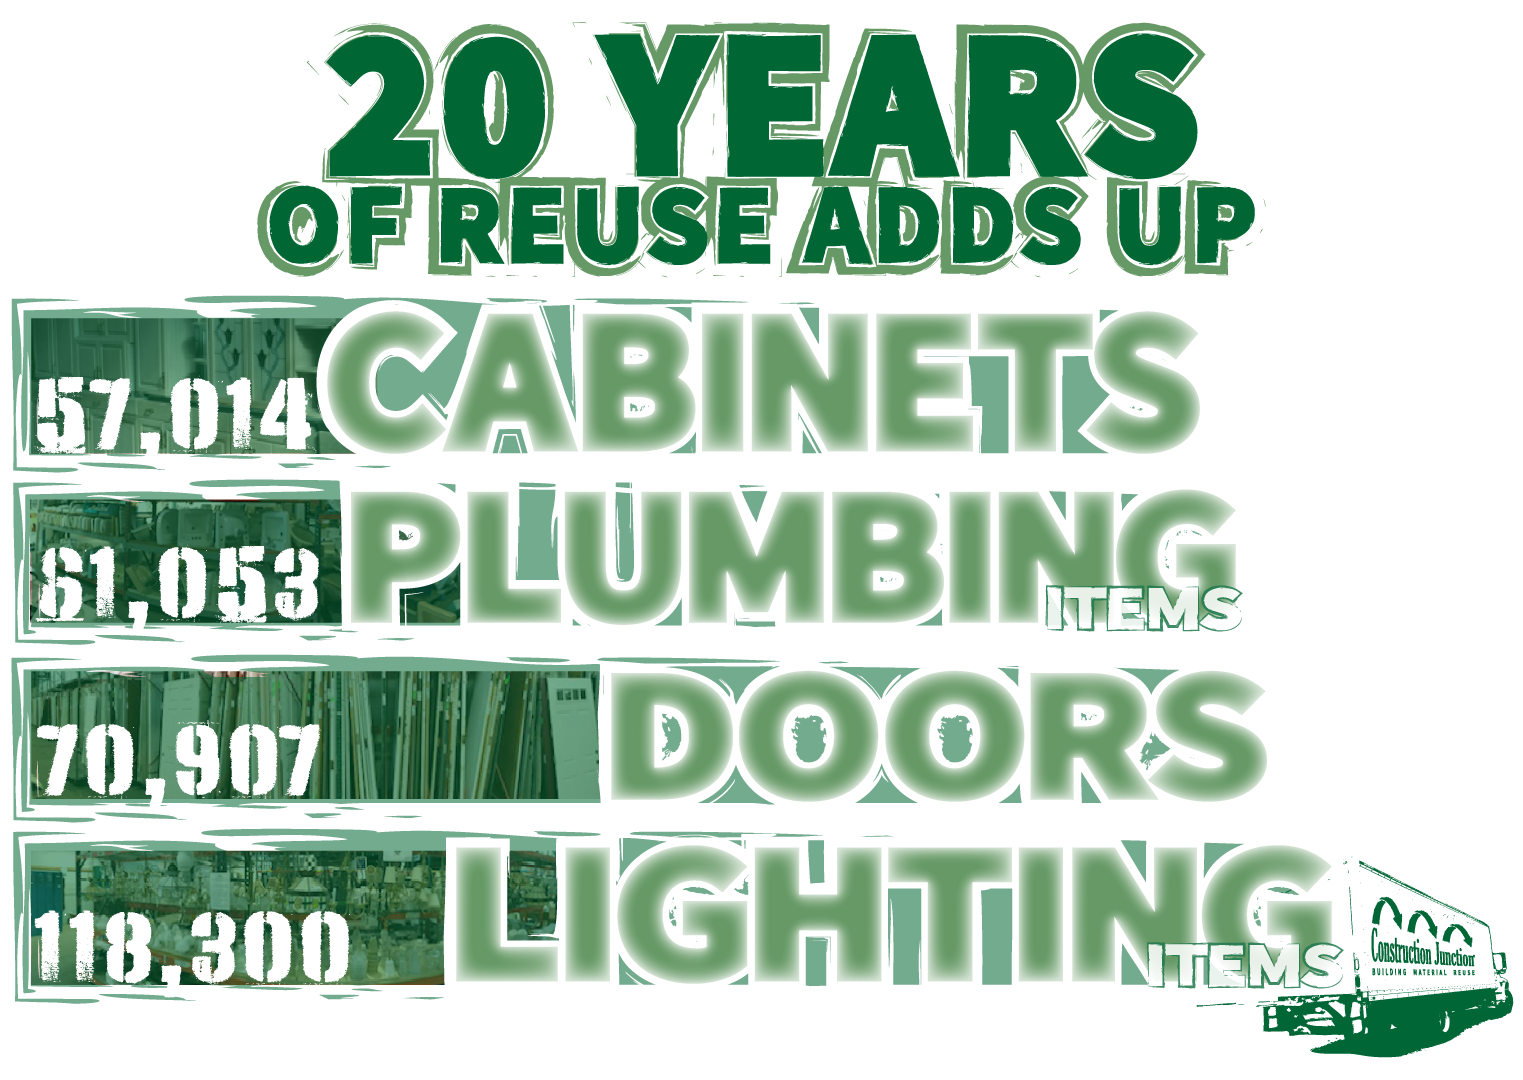 20 Years And Counting Of Material Reuse At CJ